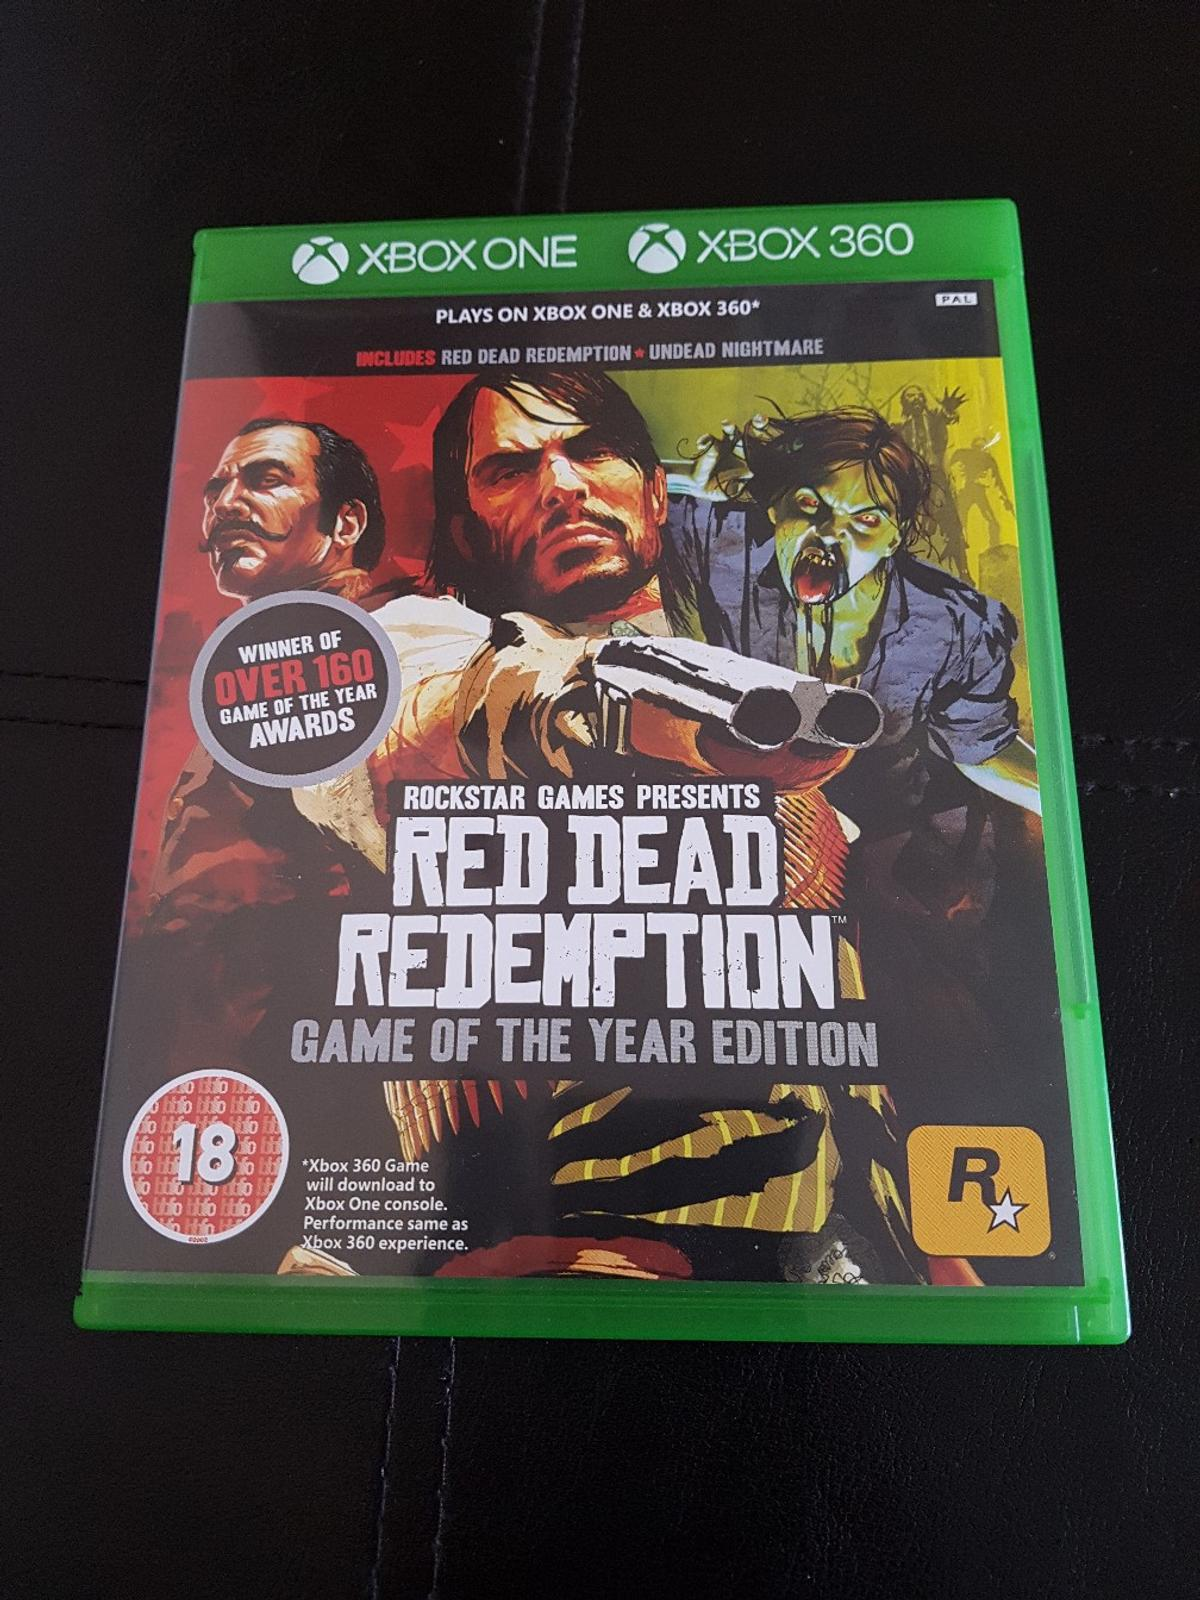 red dead redemption xbox one and xbox 360